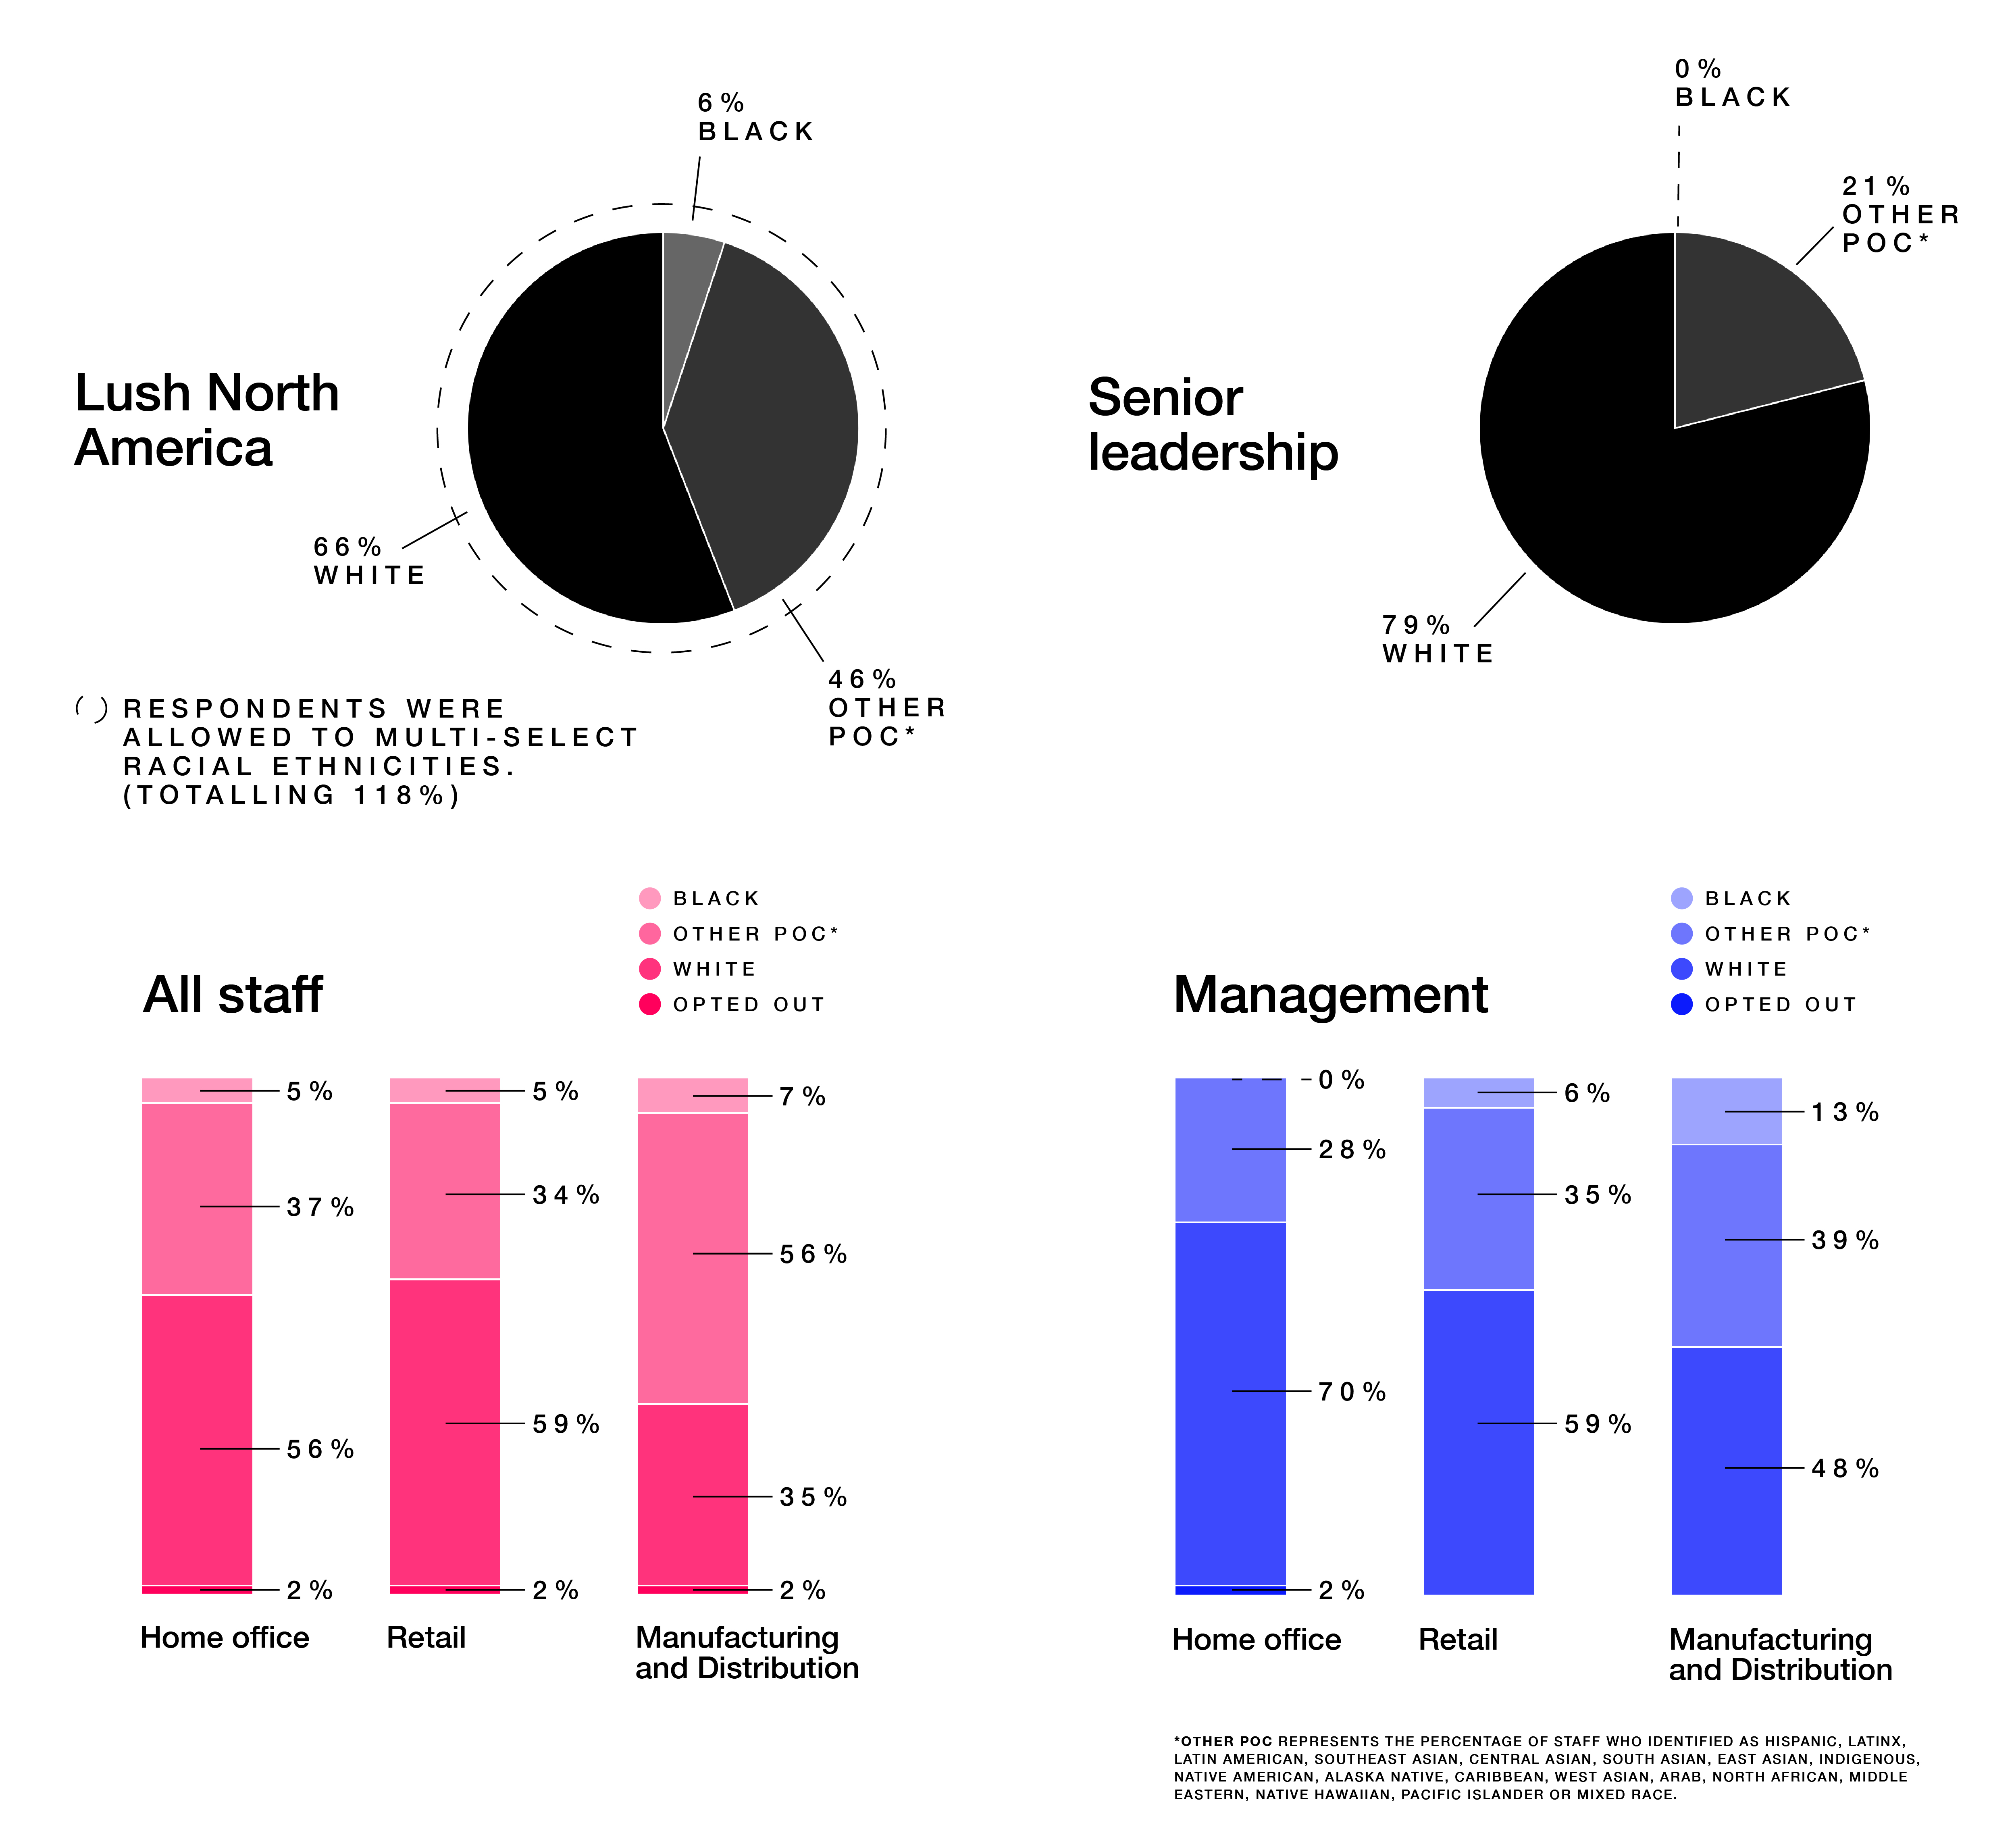 Four statistical charts showing the percentage of racial representation across different areas of the business